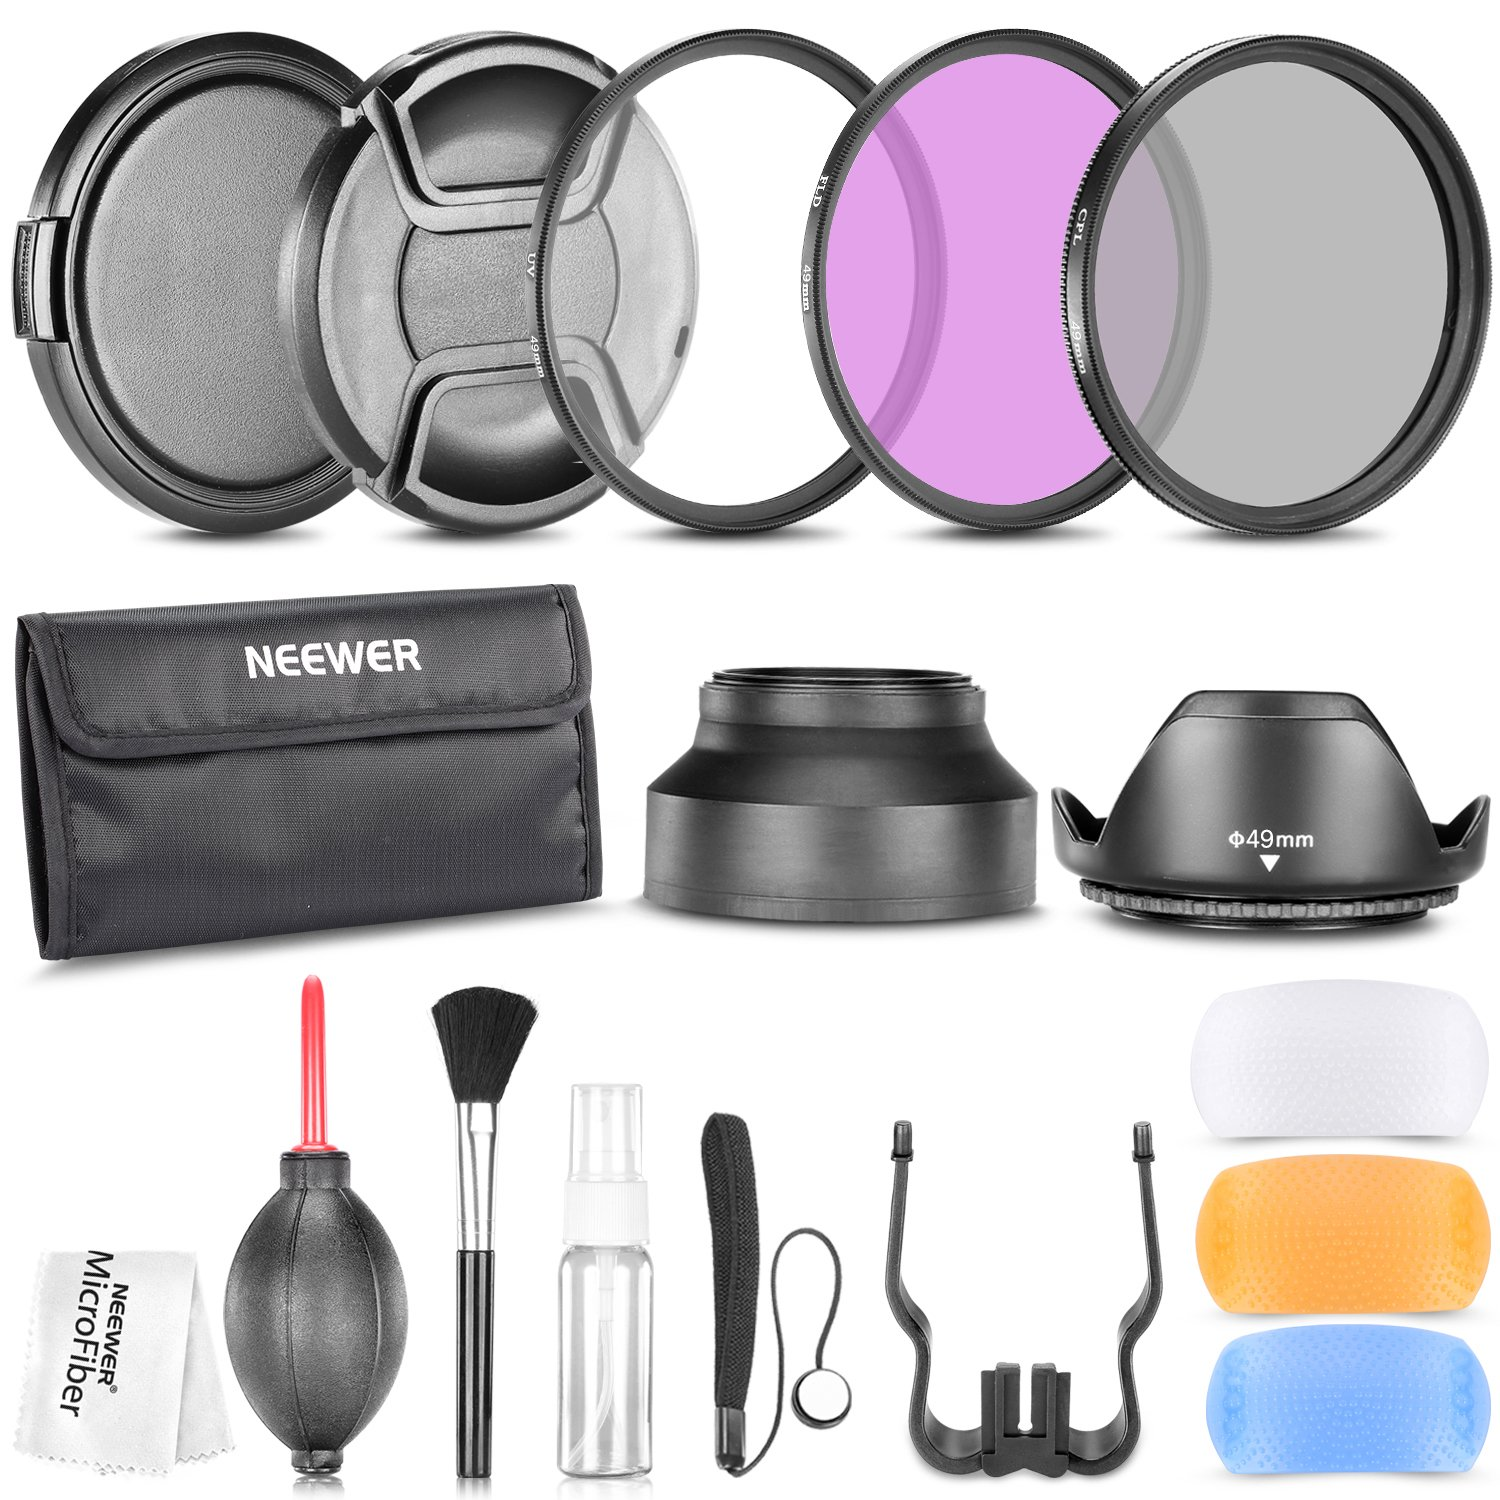 Neewer 49MM Professional Accessory Kit for Canon EOS 400D/ Xti;450D / Xsi; 1000D/ XS; 500D/T1i;550D/ T2i;600D/T3i; 650D/T4i;700D/T5i;100D;1100D; Nikon Sony Samsung Fujifilm Pentax and Other DSLR Camera Lenses with 49MM Filter Thread - Includes: Filter Kit